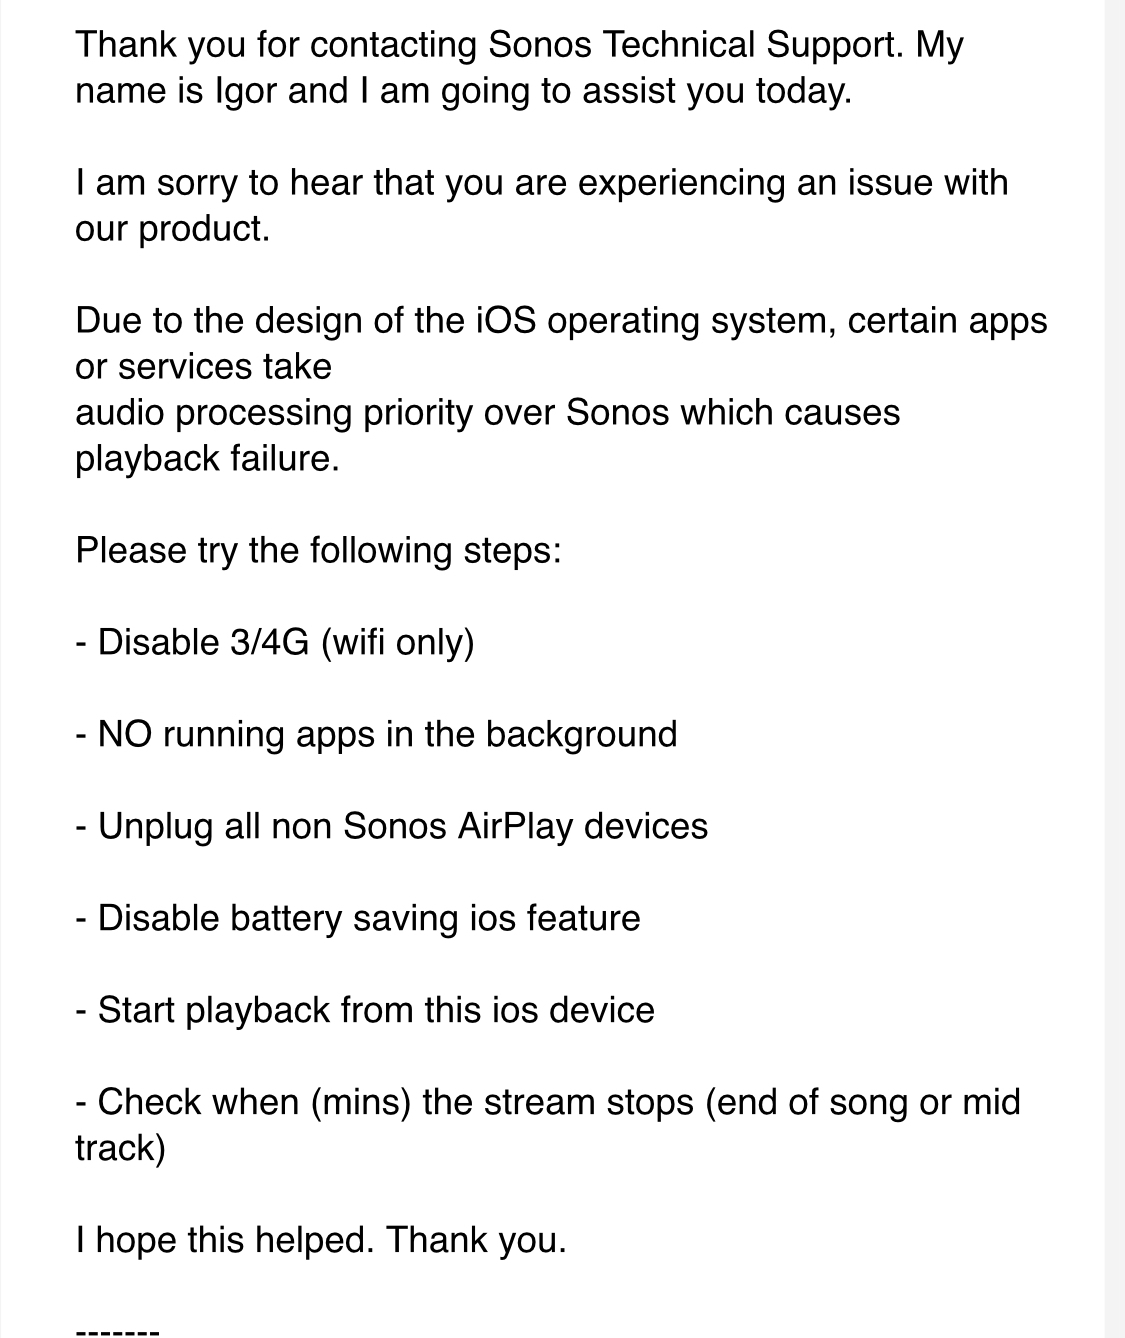 Issues with sonos skipping songs | Sonos Community